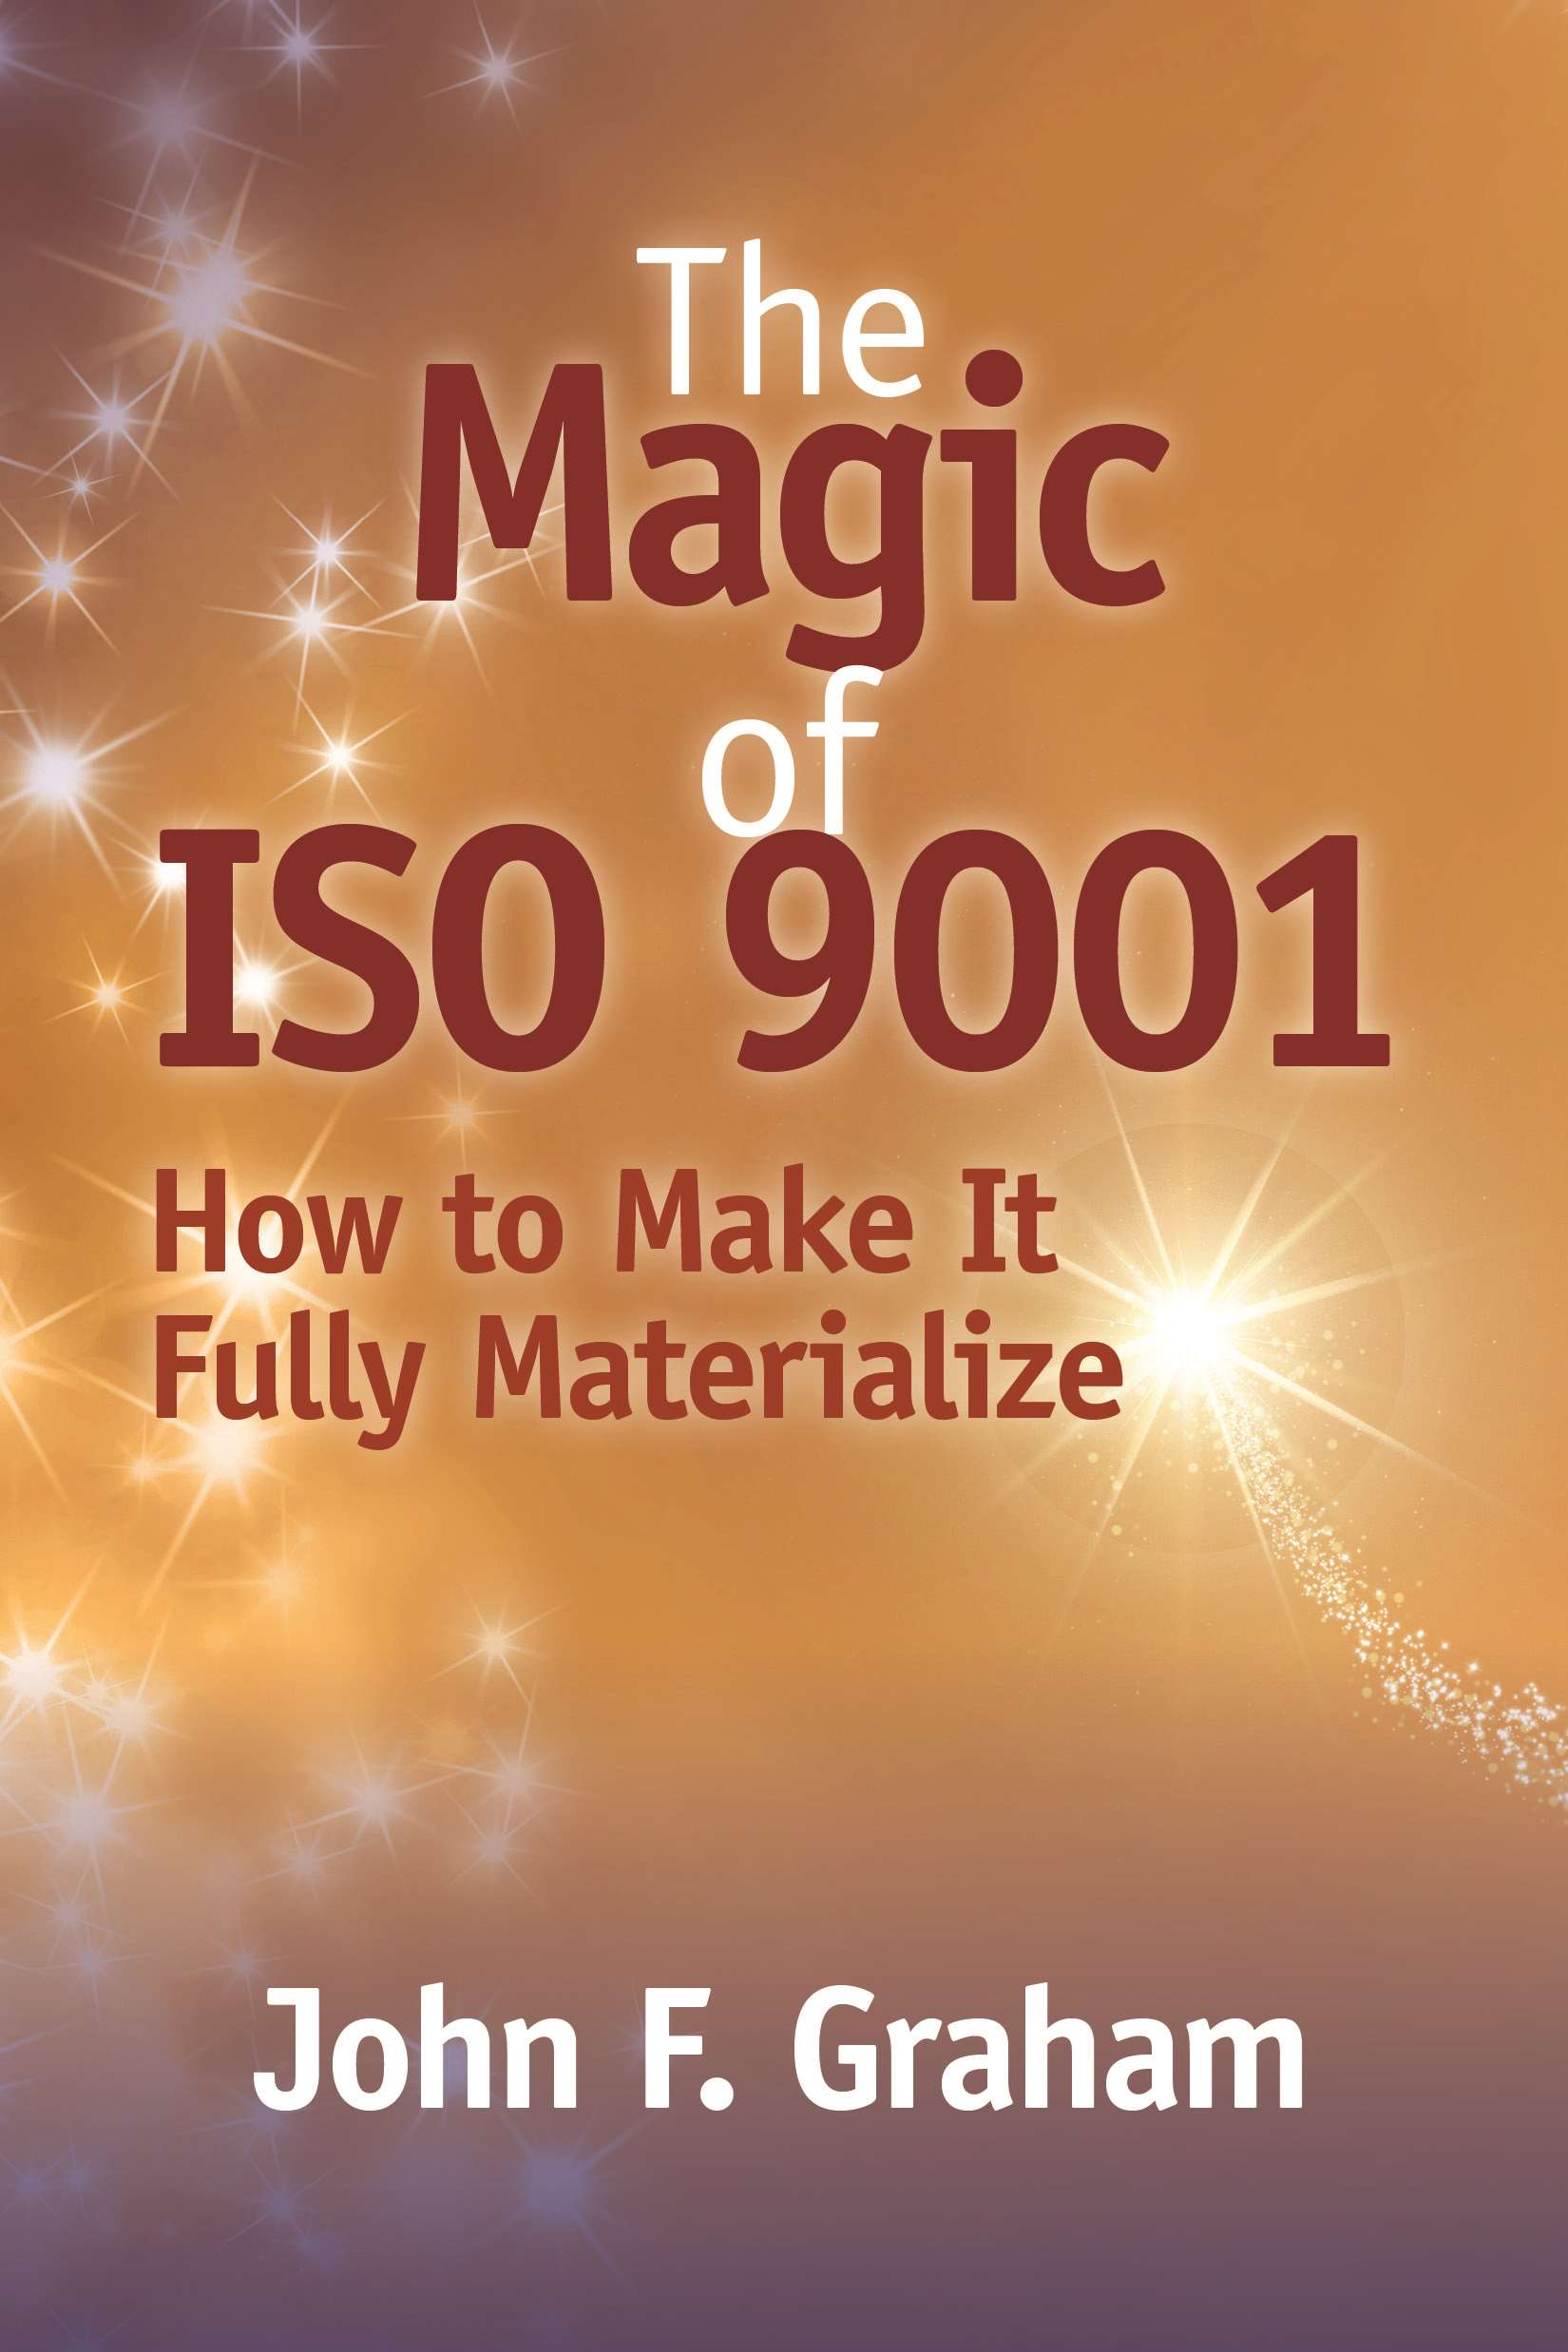 The Magic of ISO 9001